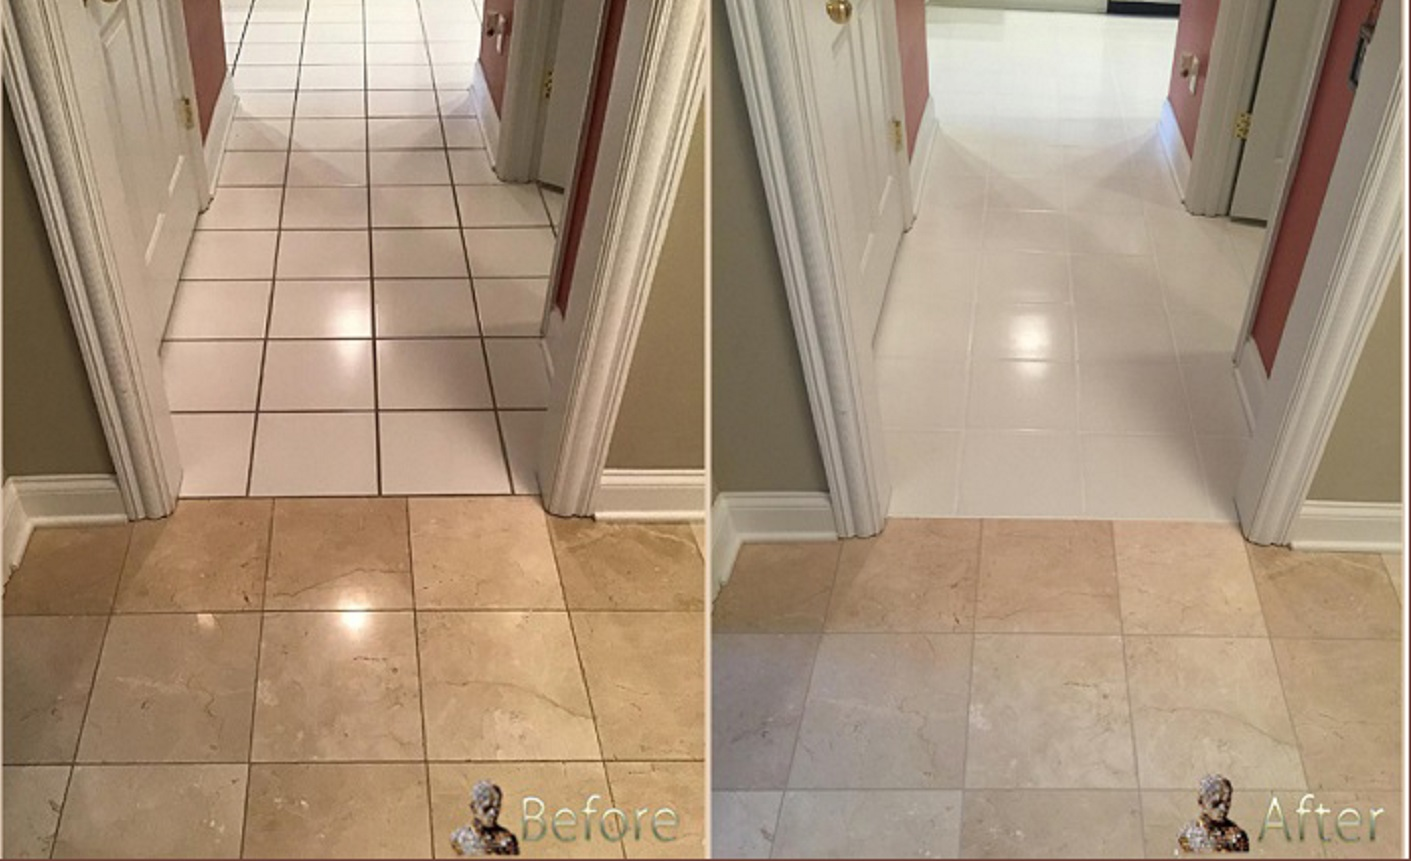 How To Clean Porcelain Tile - 10 Minutes for mom